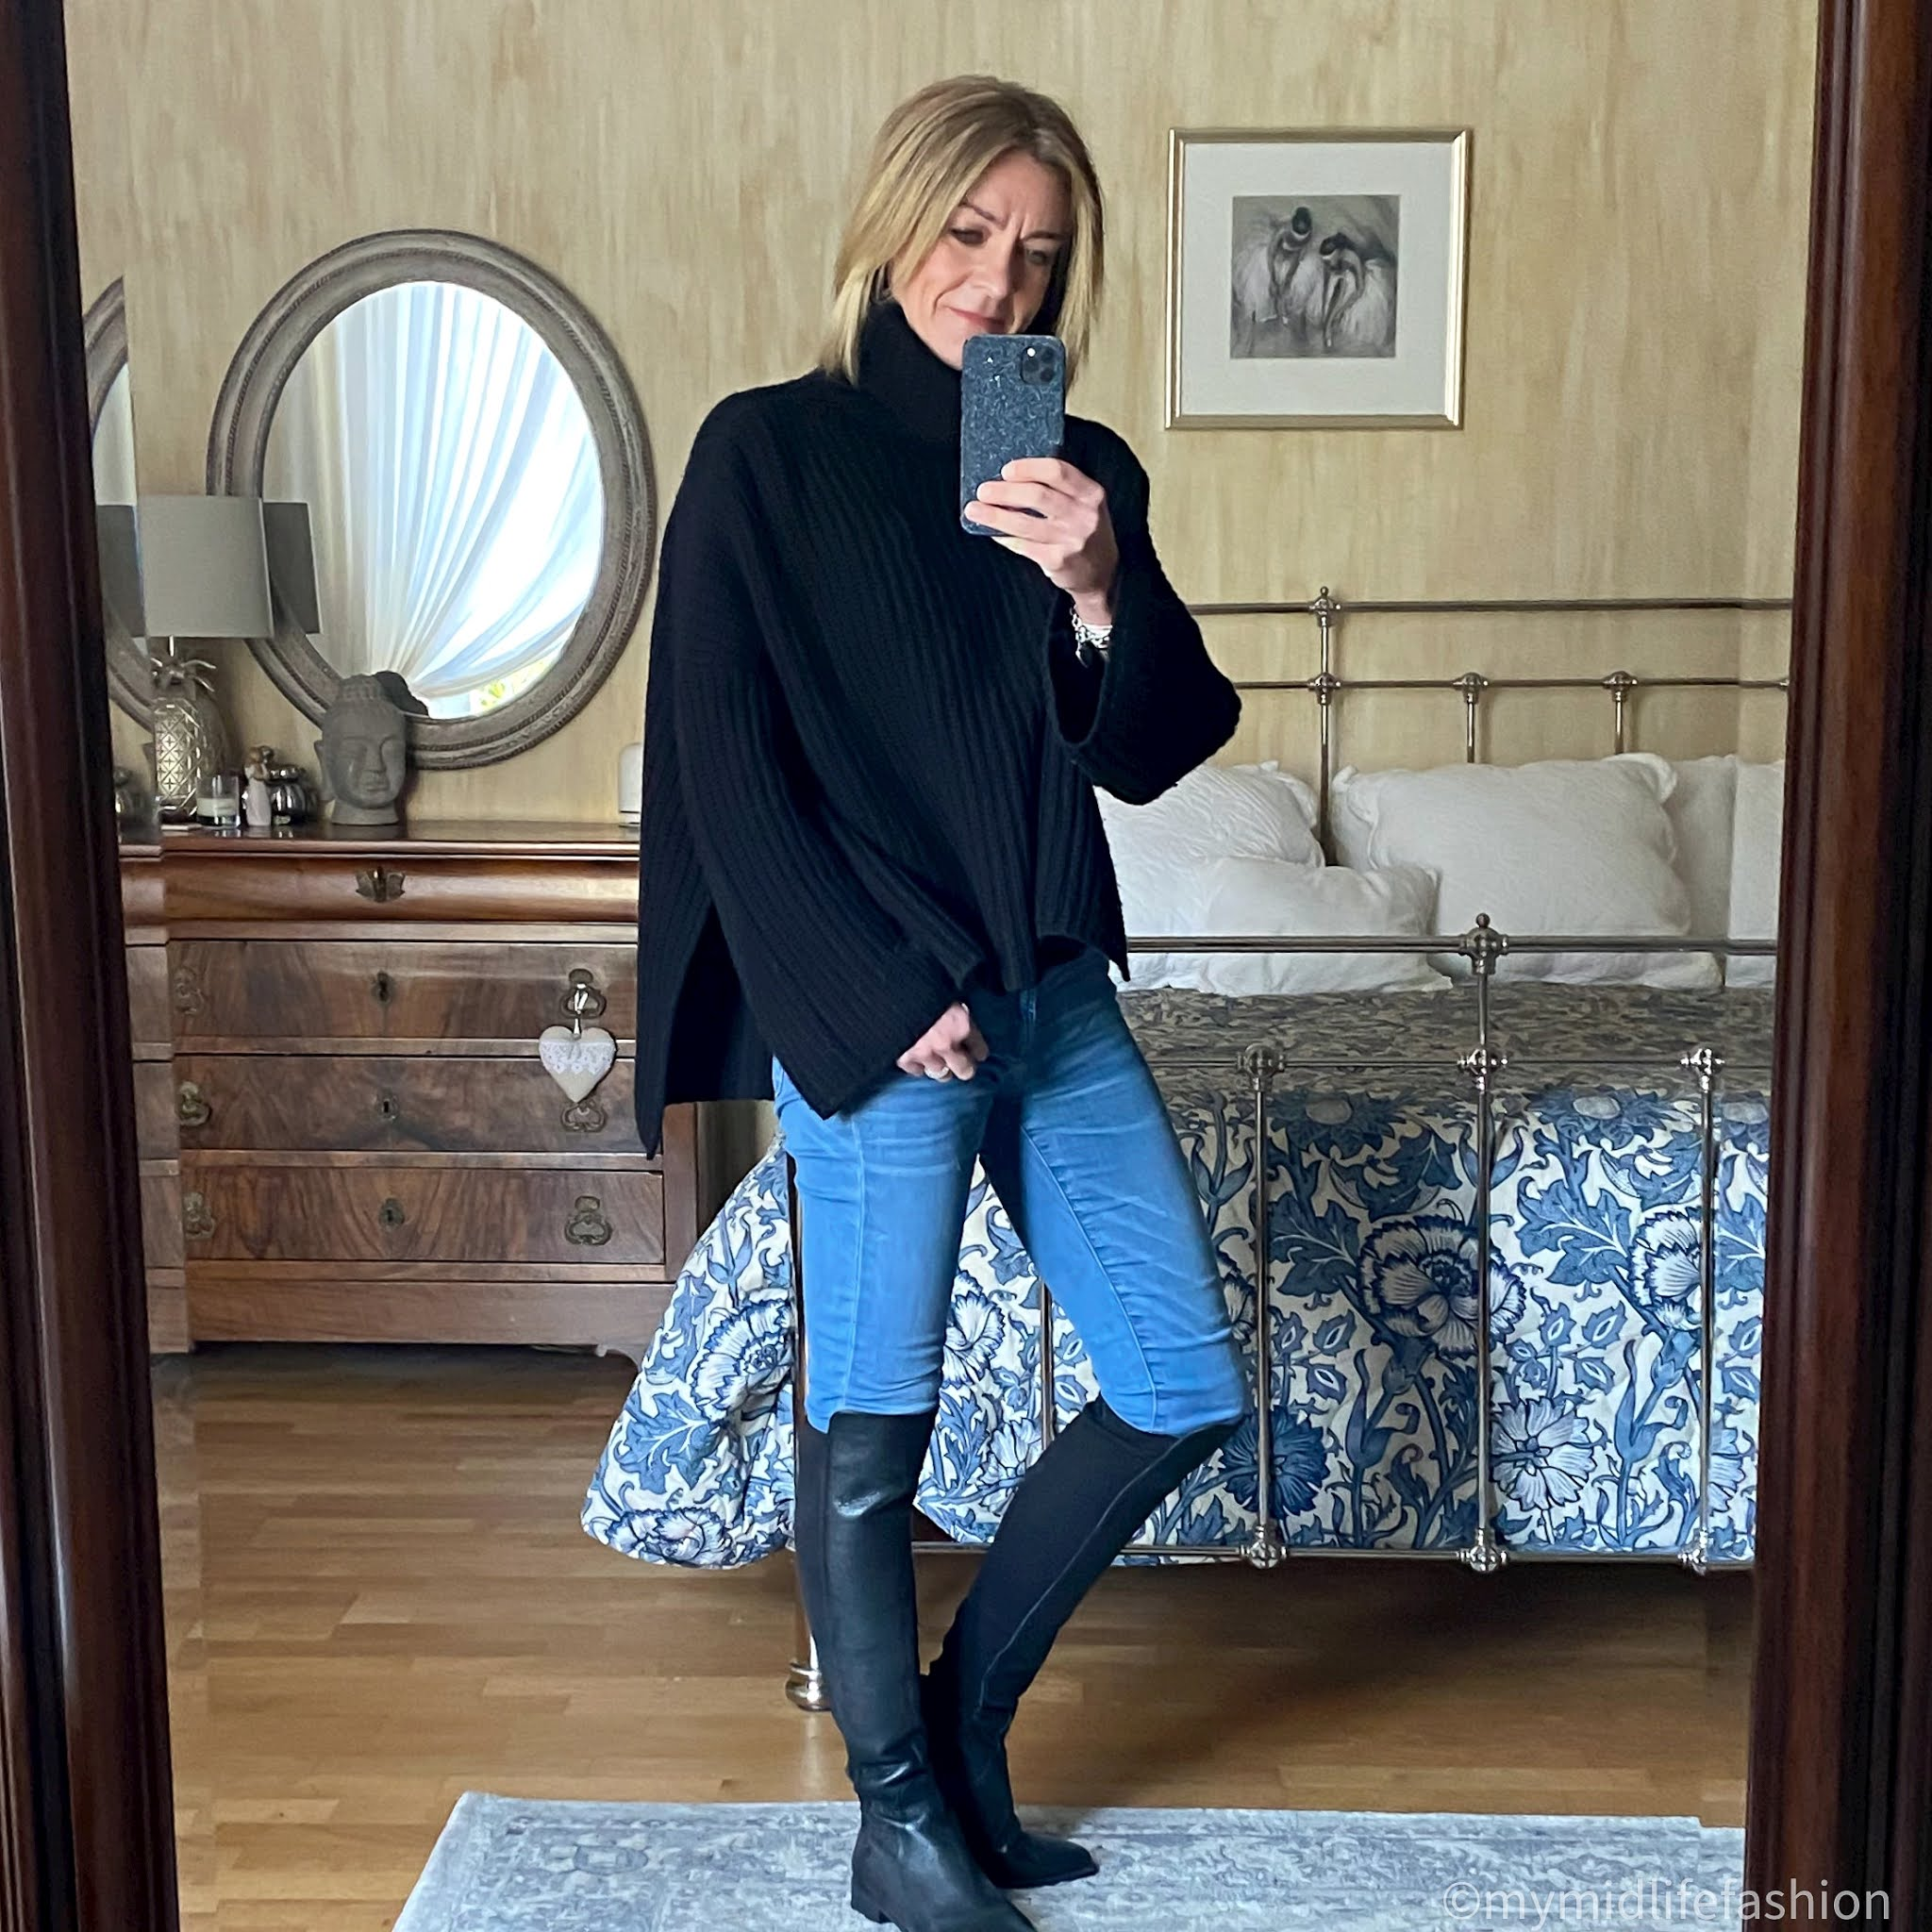 my midlife fashion, zara over the knee leather boots, Joseph chunky knit rollneck jumper, j crew 8 inch toothpick skinny jeans